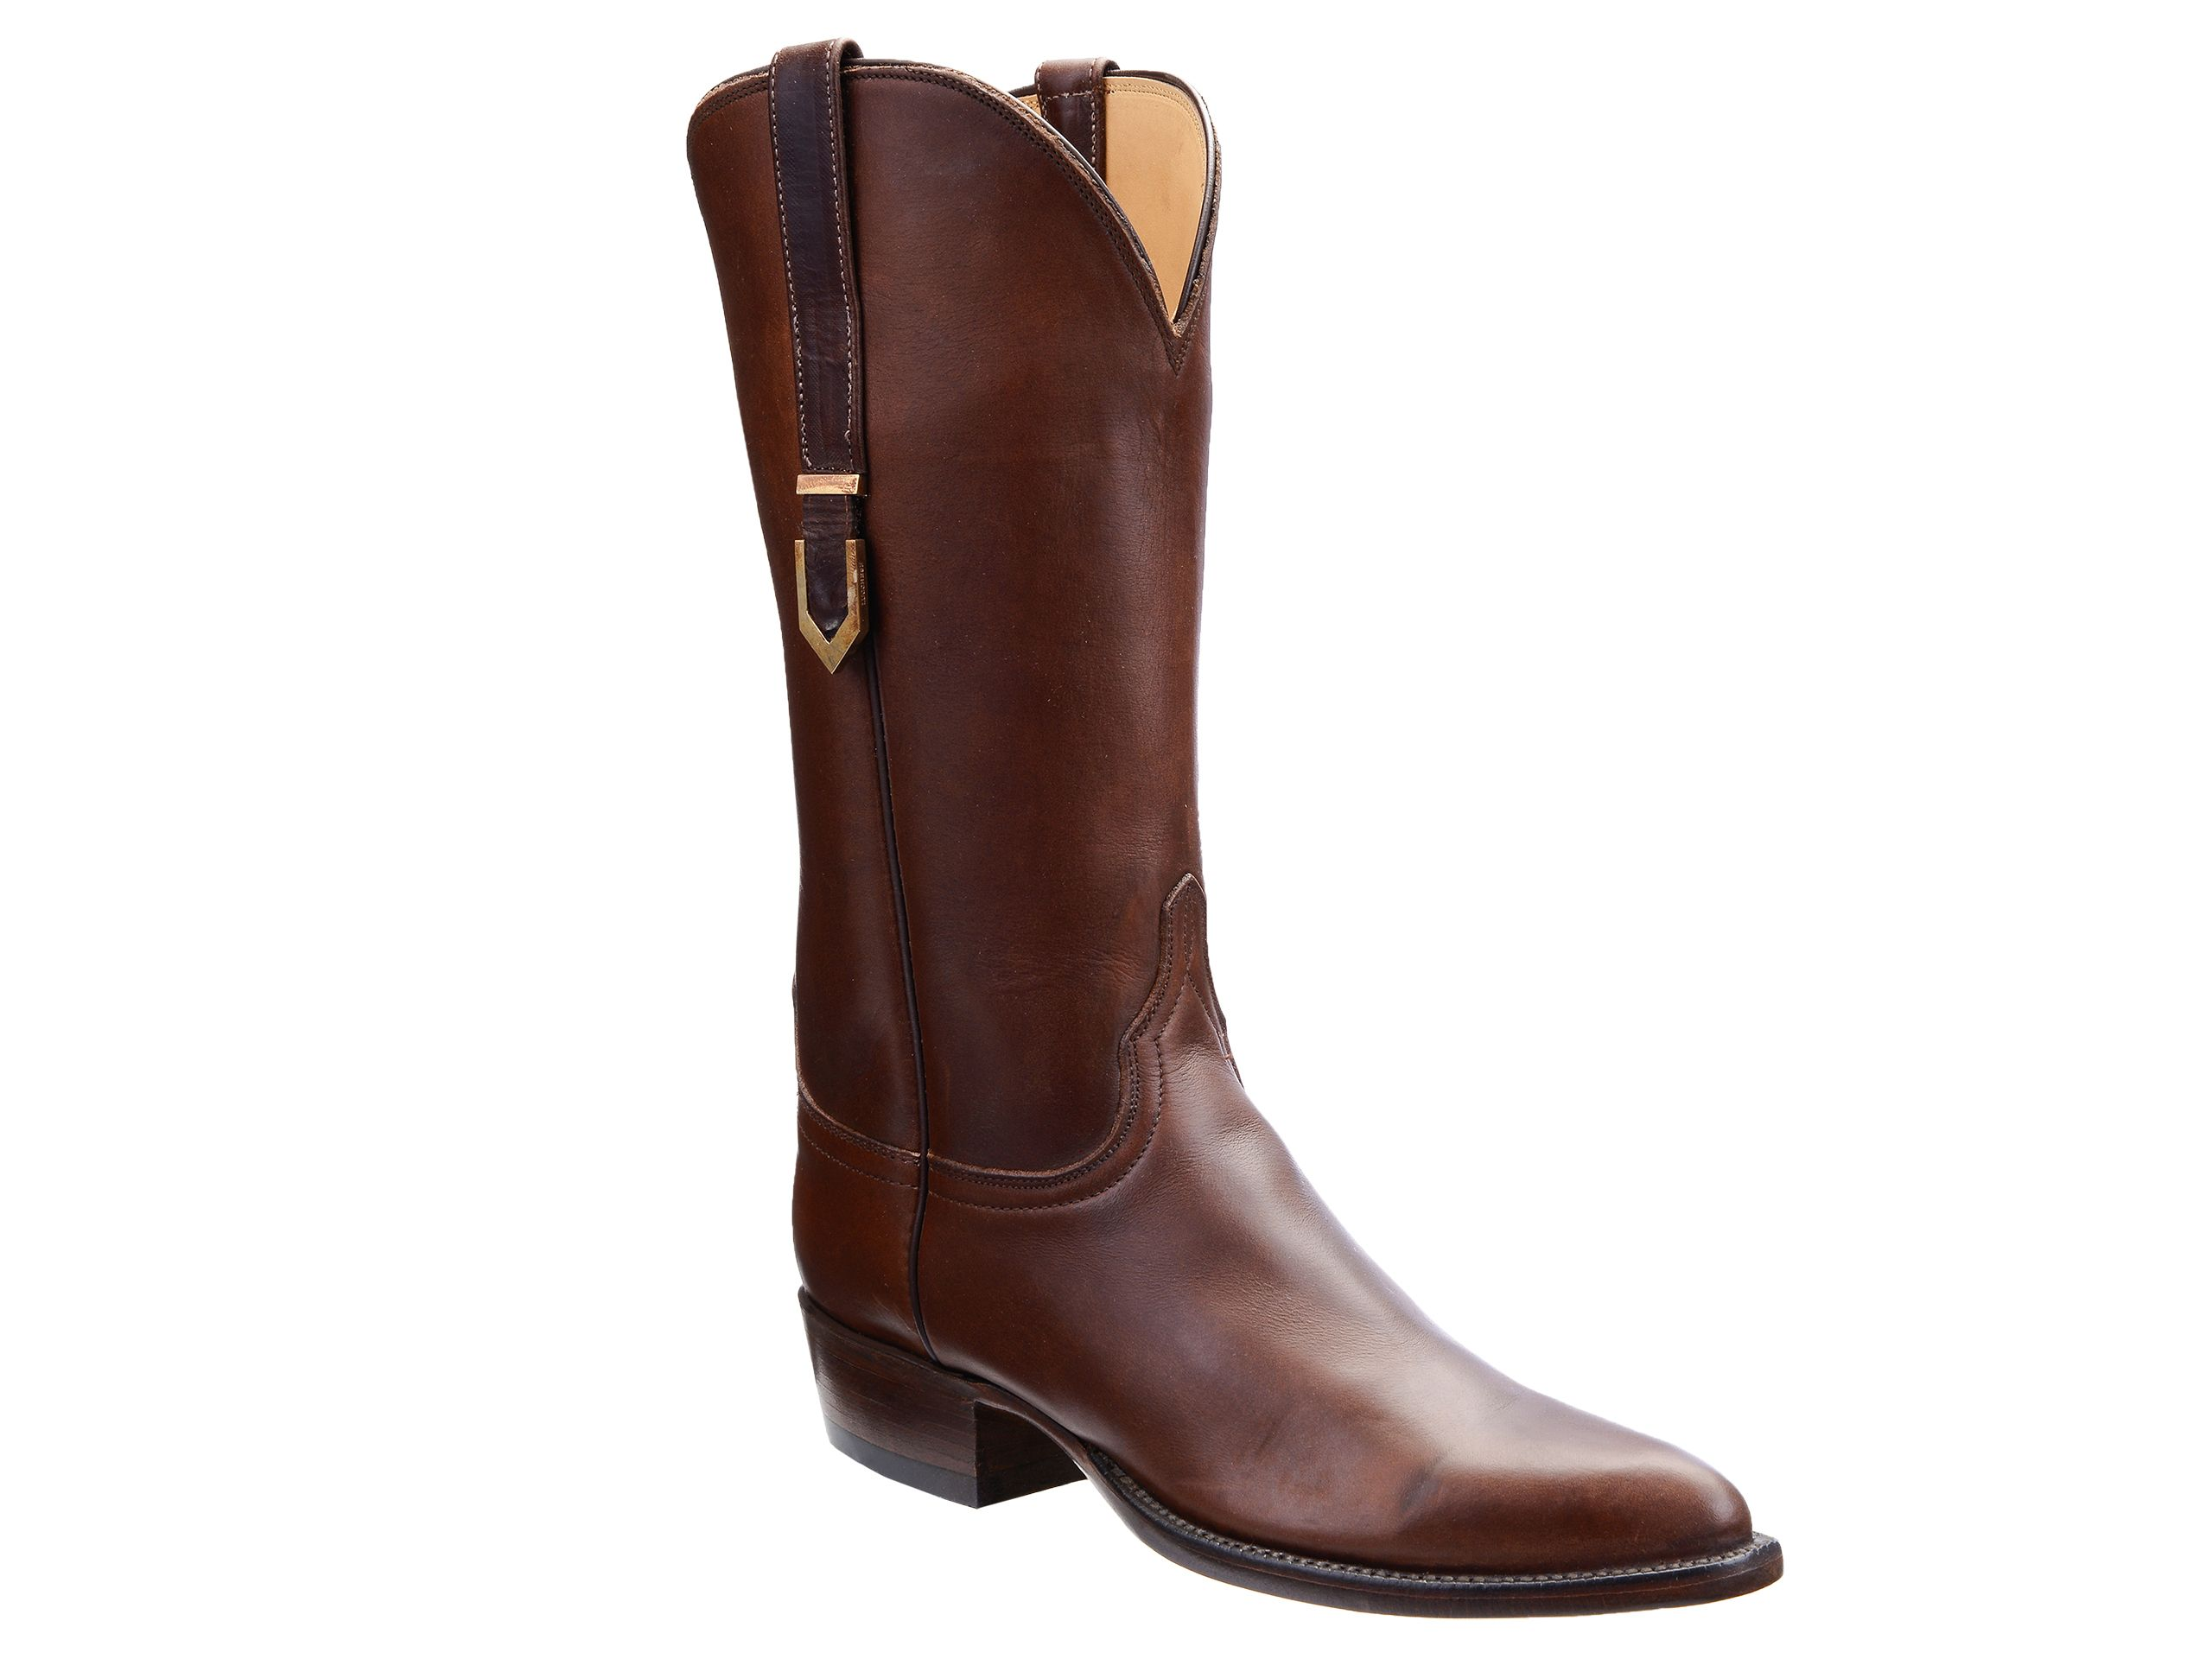 4f18cbfe9d5 Gillespie | Boots/Shoes/Handbags | Boots, Cowgirl boots, Shoe boots